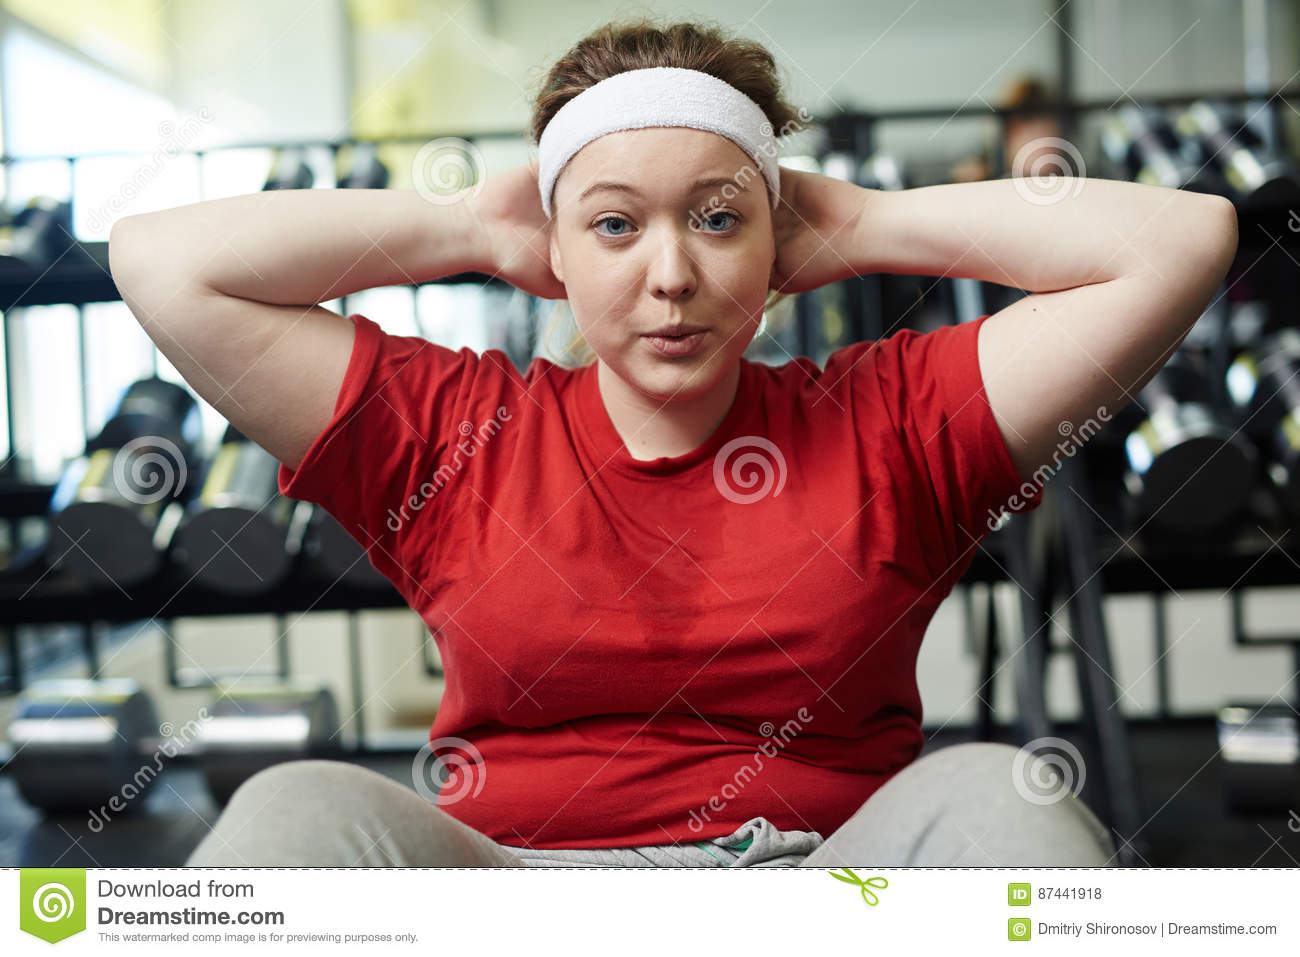 Obese Woman Sweating In Gym To Lose Weight Stock Photo Image Of Loss Sport 87441918